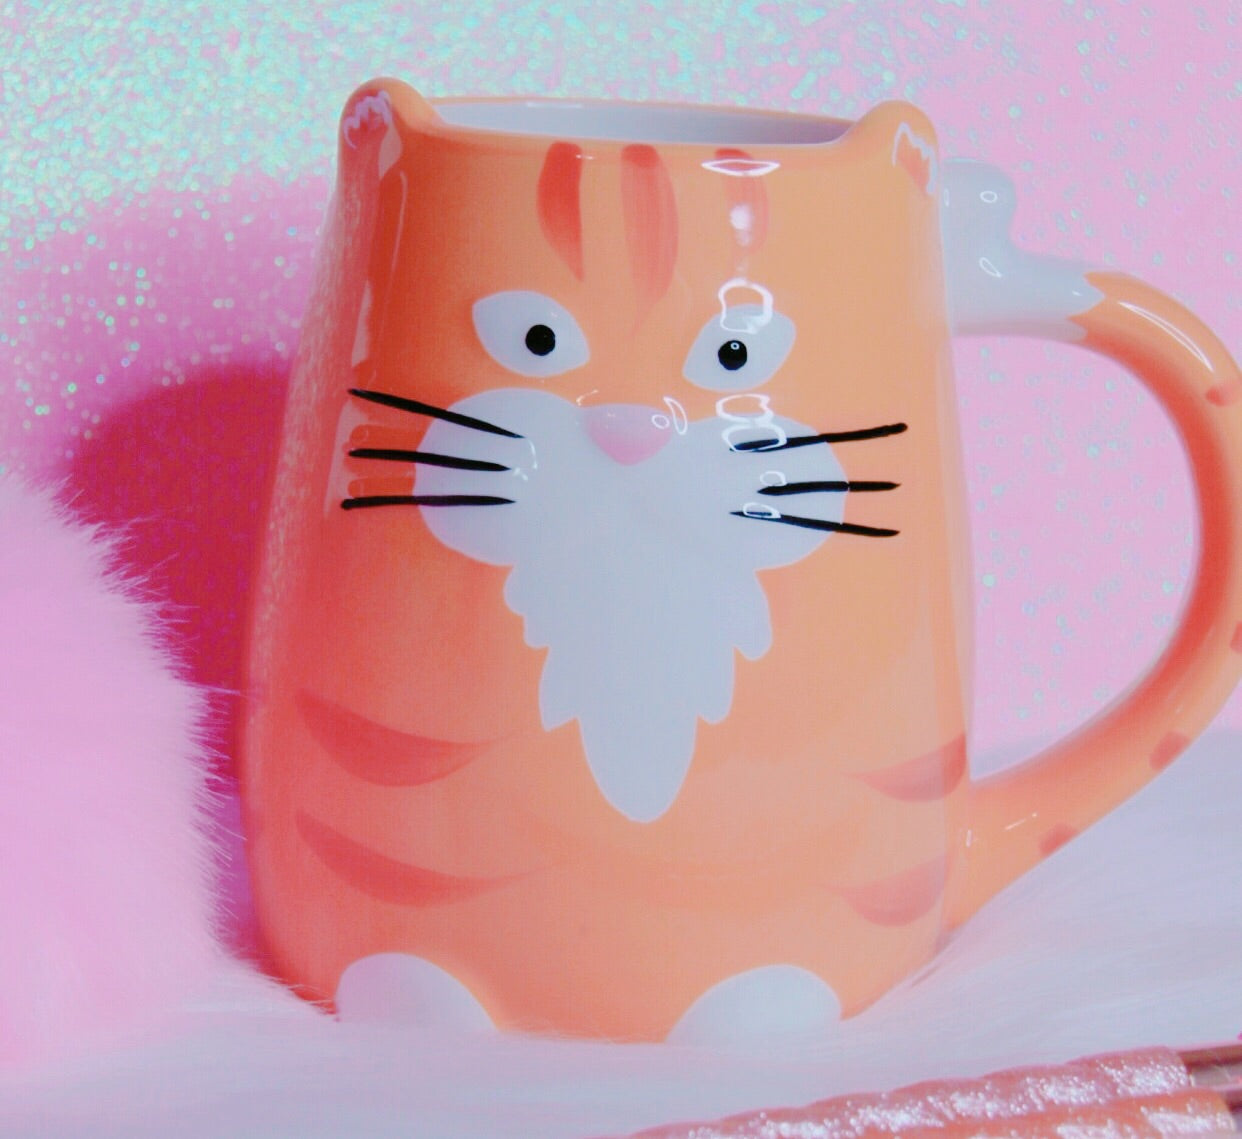 Orange kitty 🐱 mug